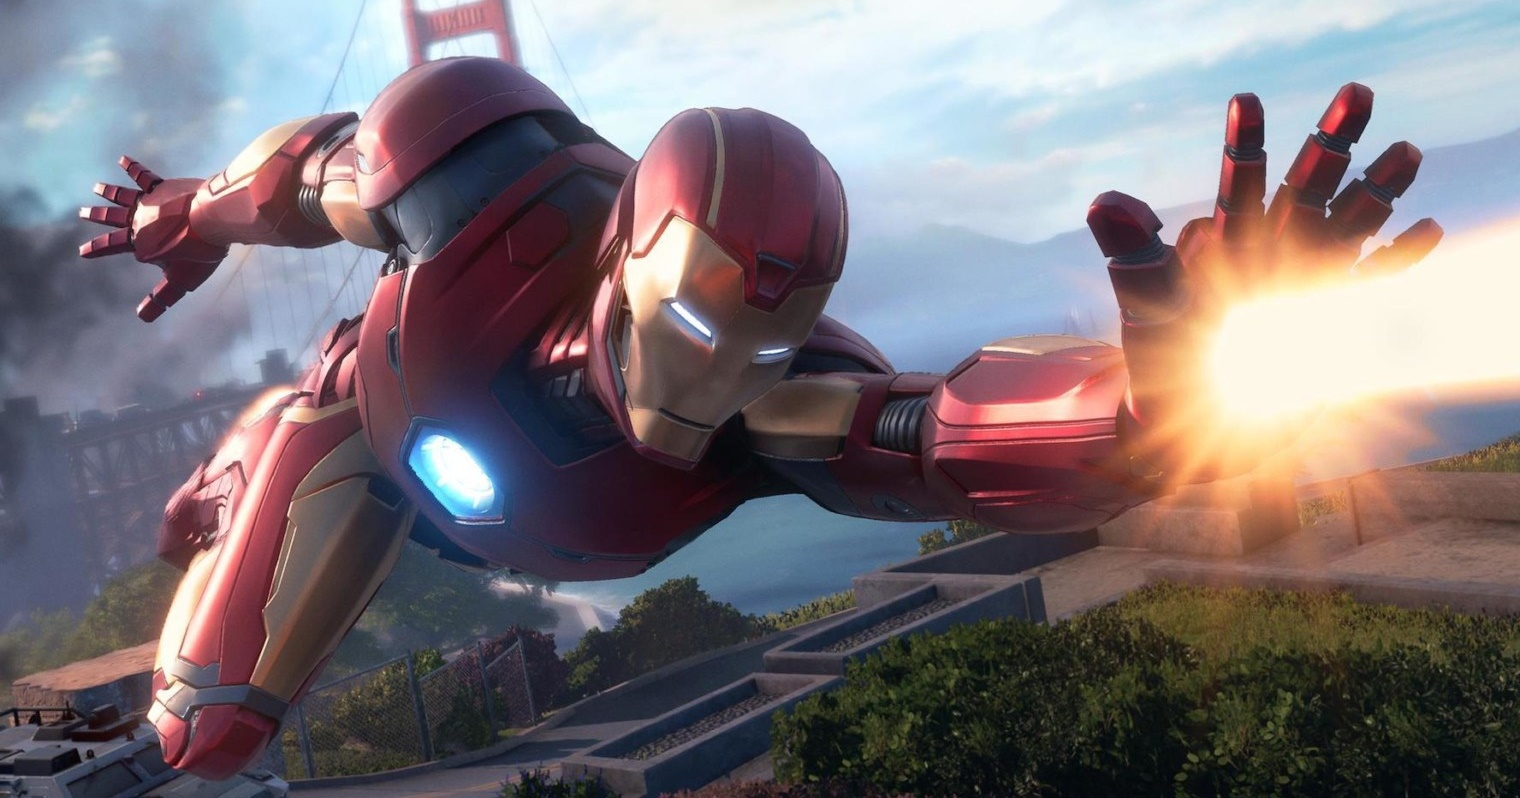 1566315913_first-official-marvel_s-avengers-gameplay-footage-1520x856.jpg